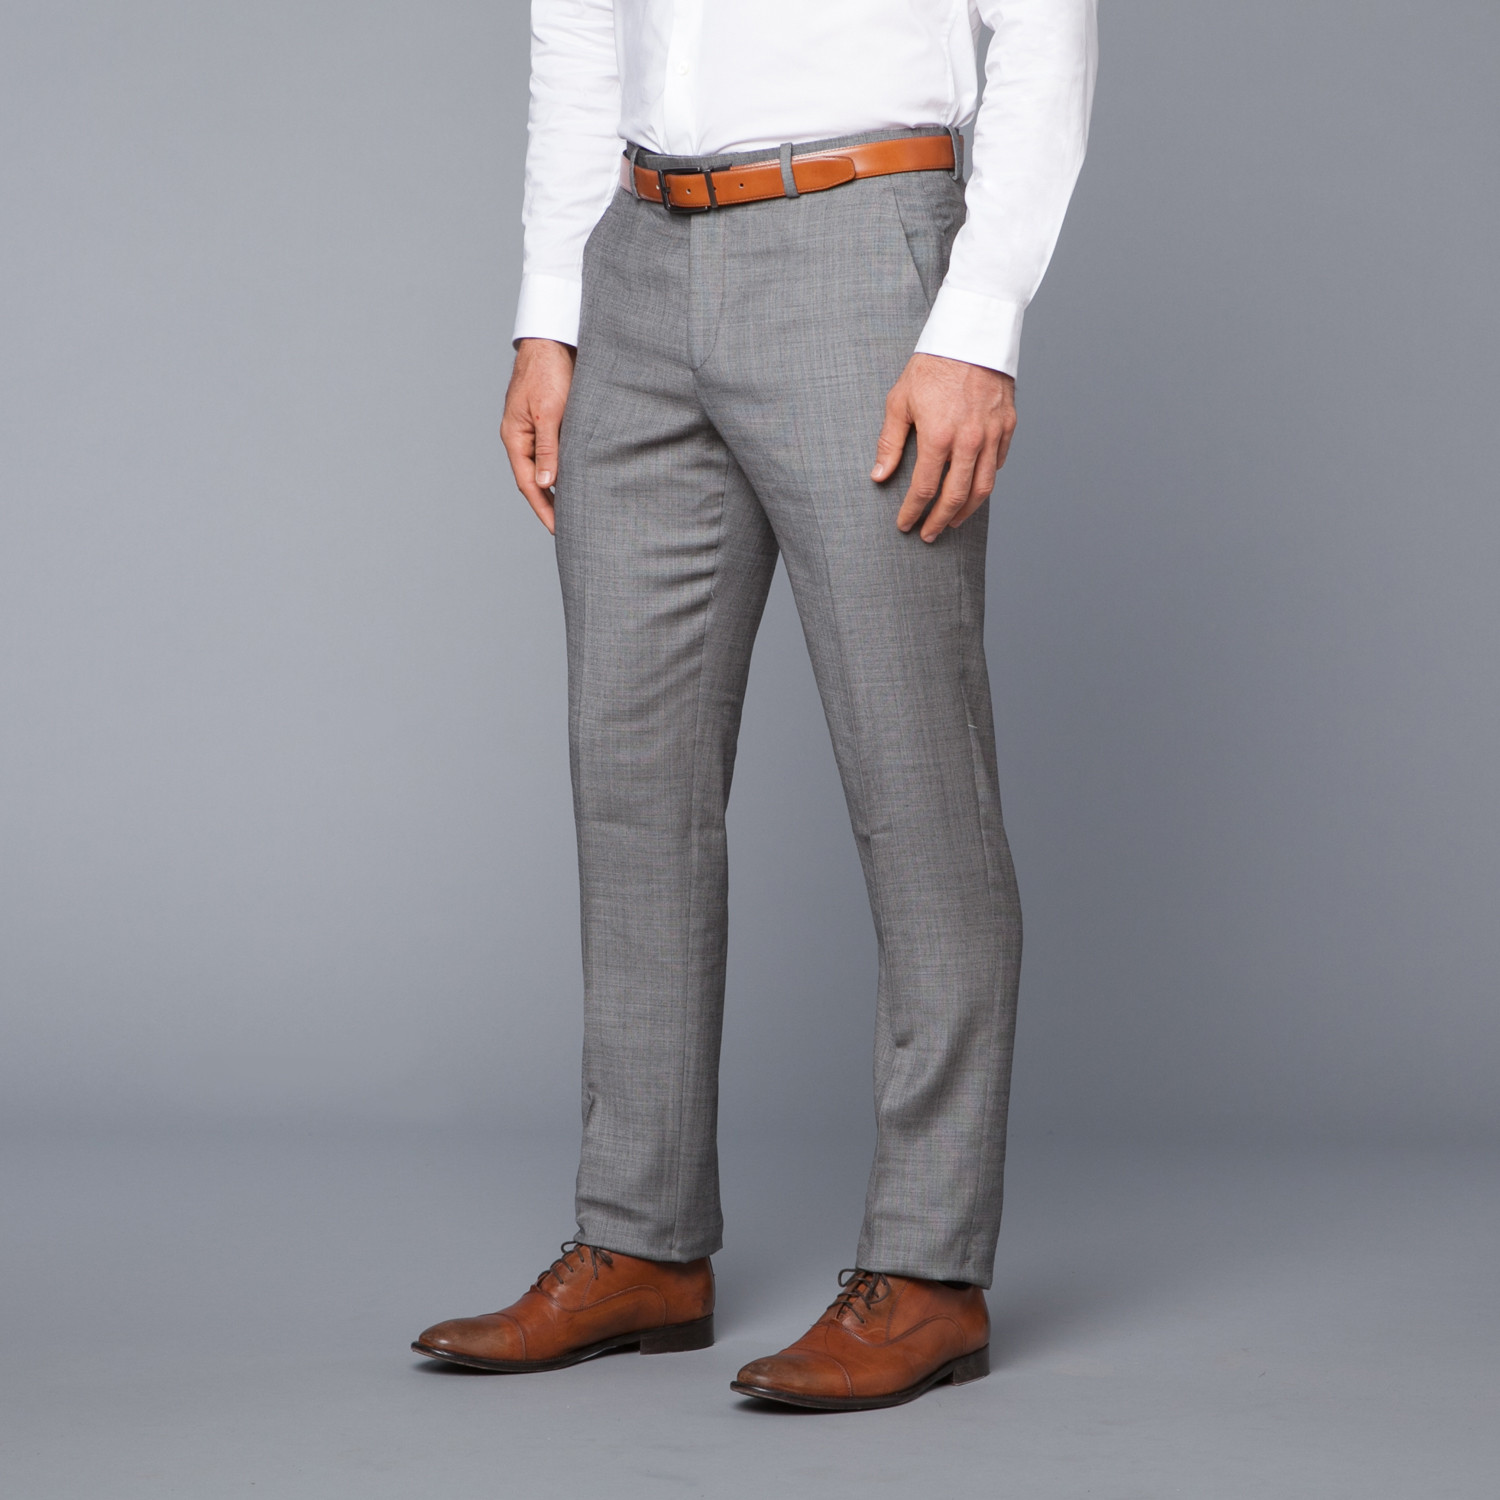 Luxury Online Buy Wholesale Gray Dress Pants From China Gray Dress Pants